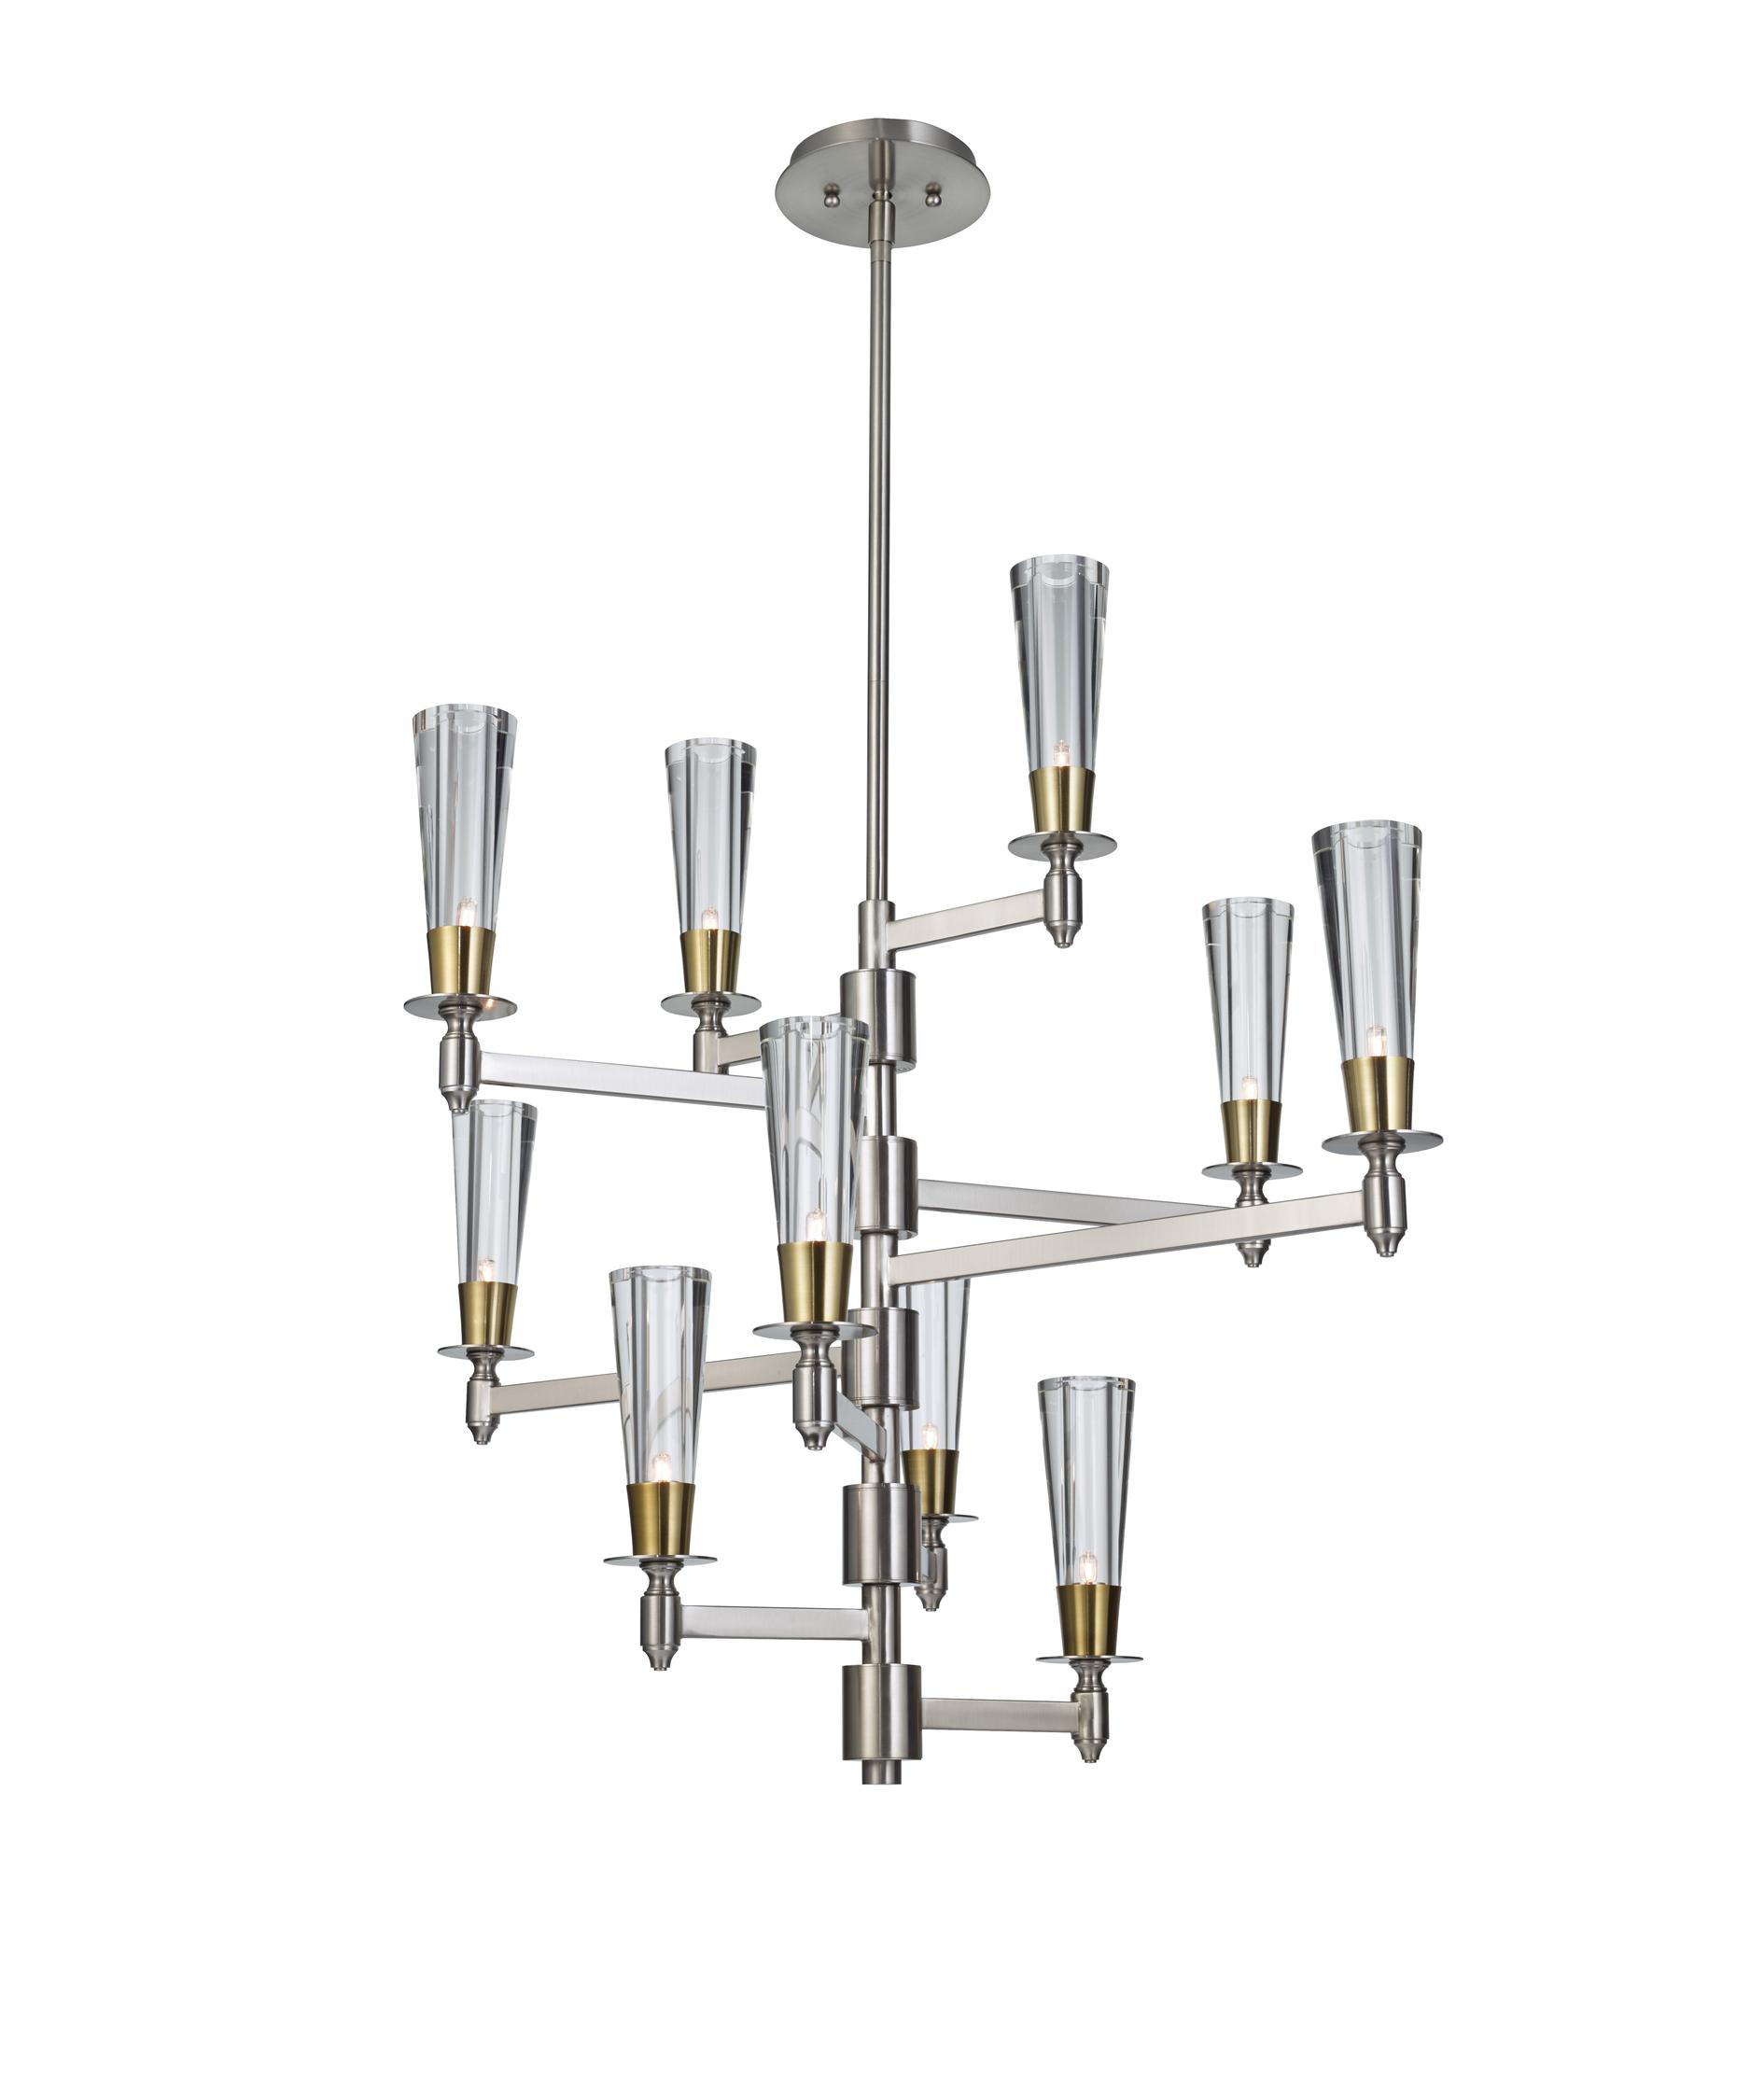 Murray Feiss Chandeliers Chandeliers Design – Murray Feiss Chandeliers